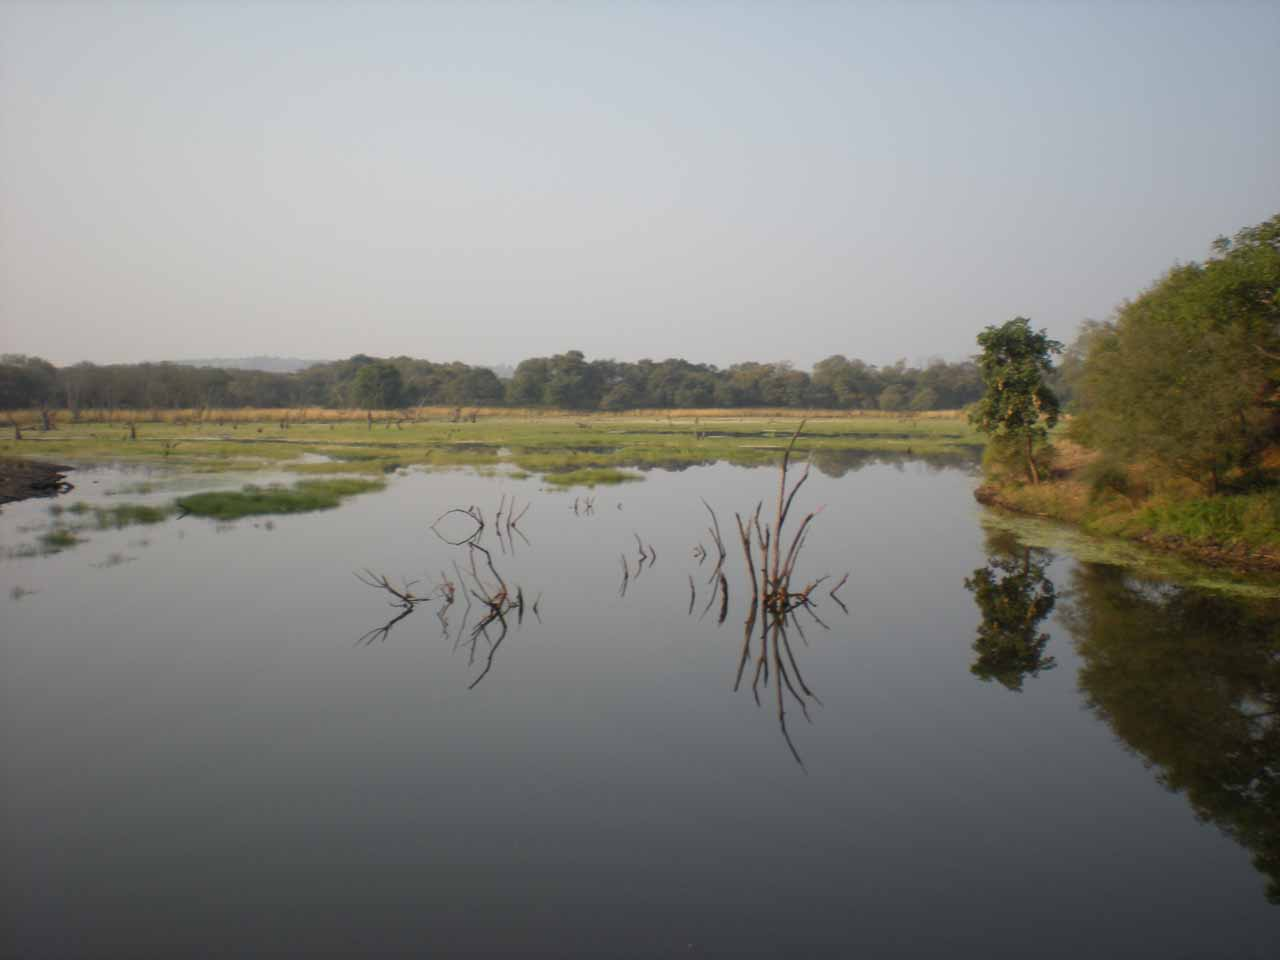 A calm wetland in Ranthambore